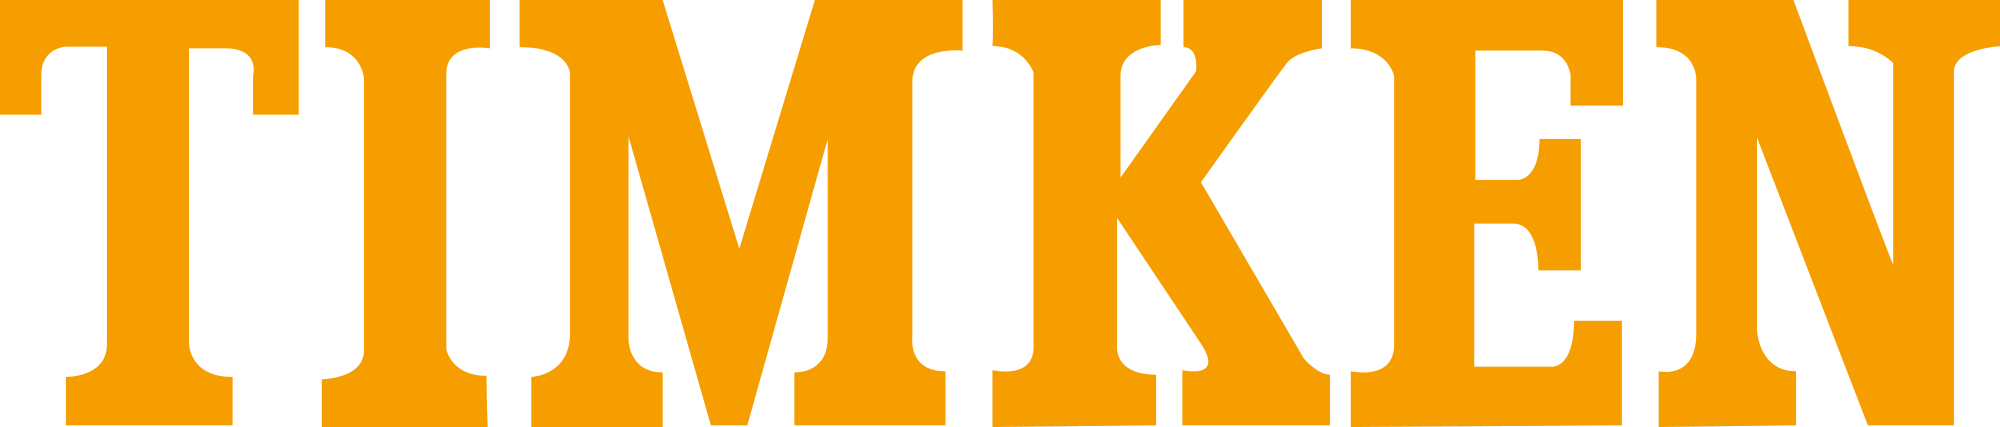 Timken.svg.png